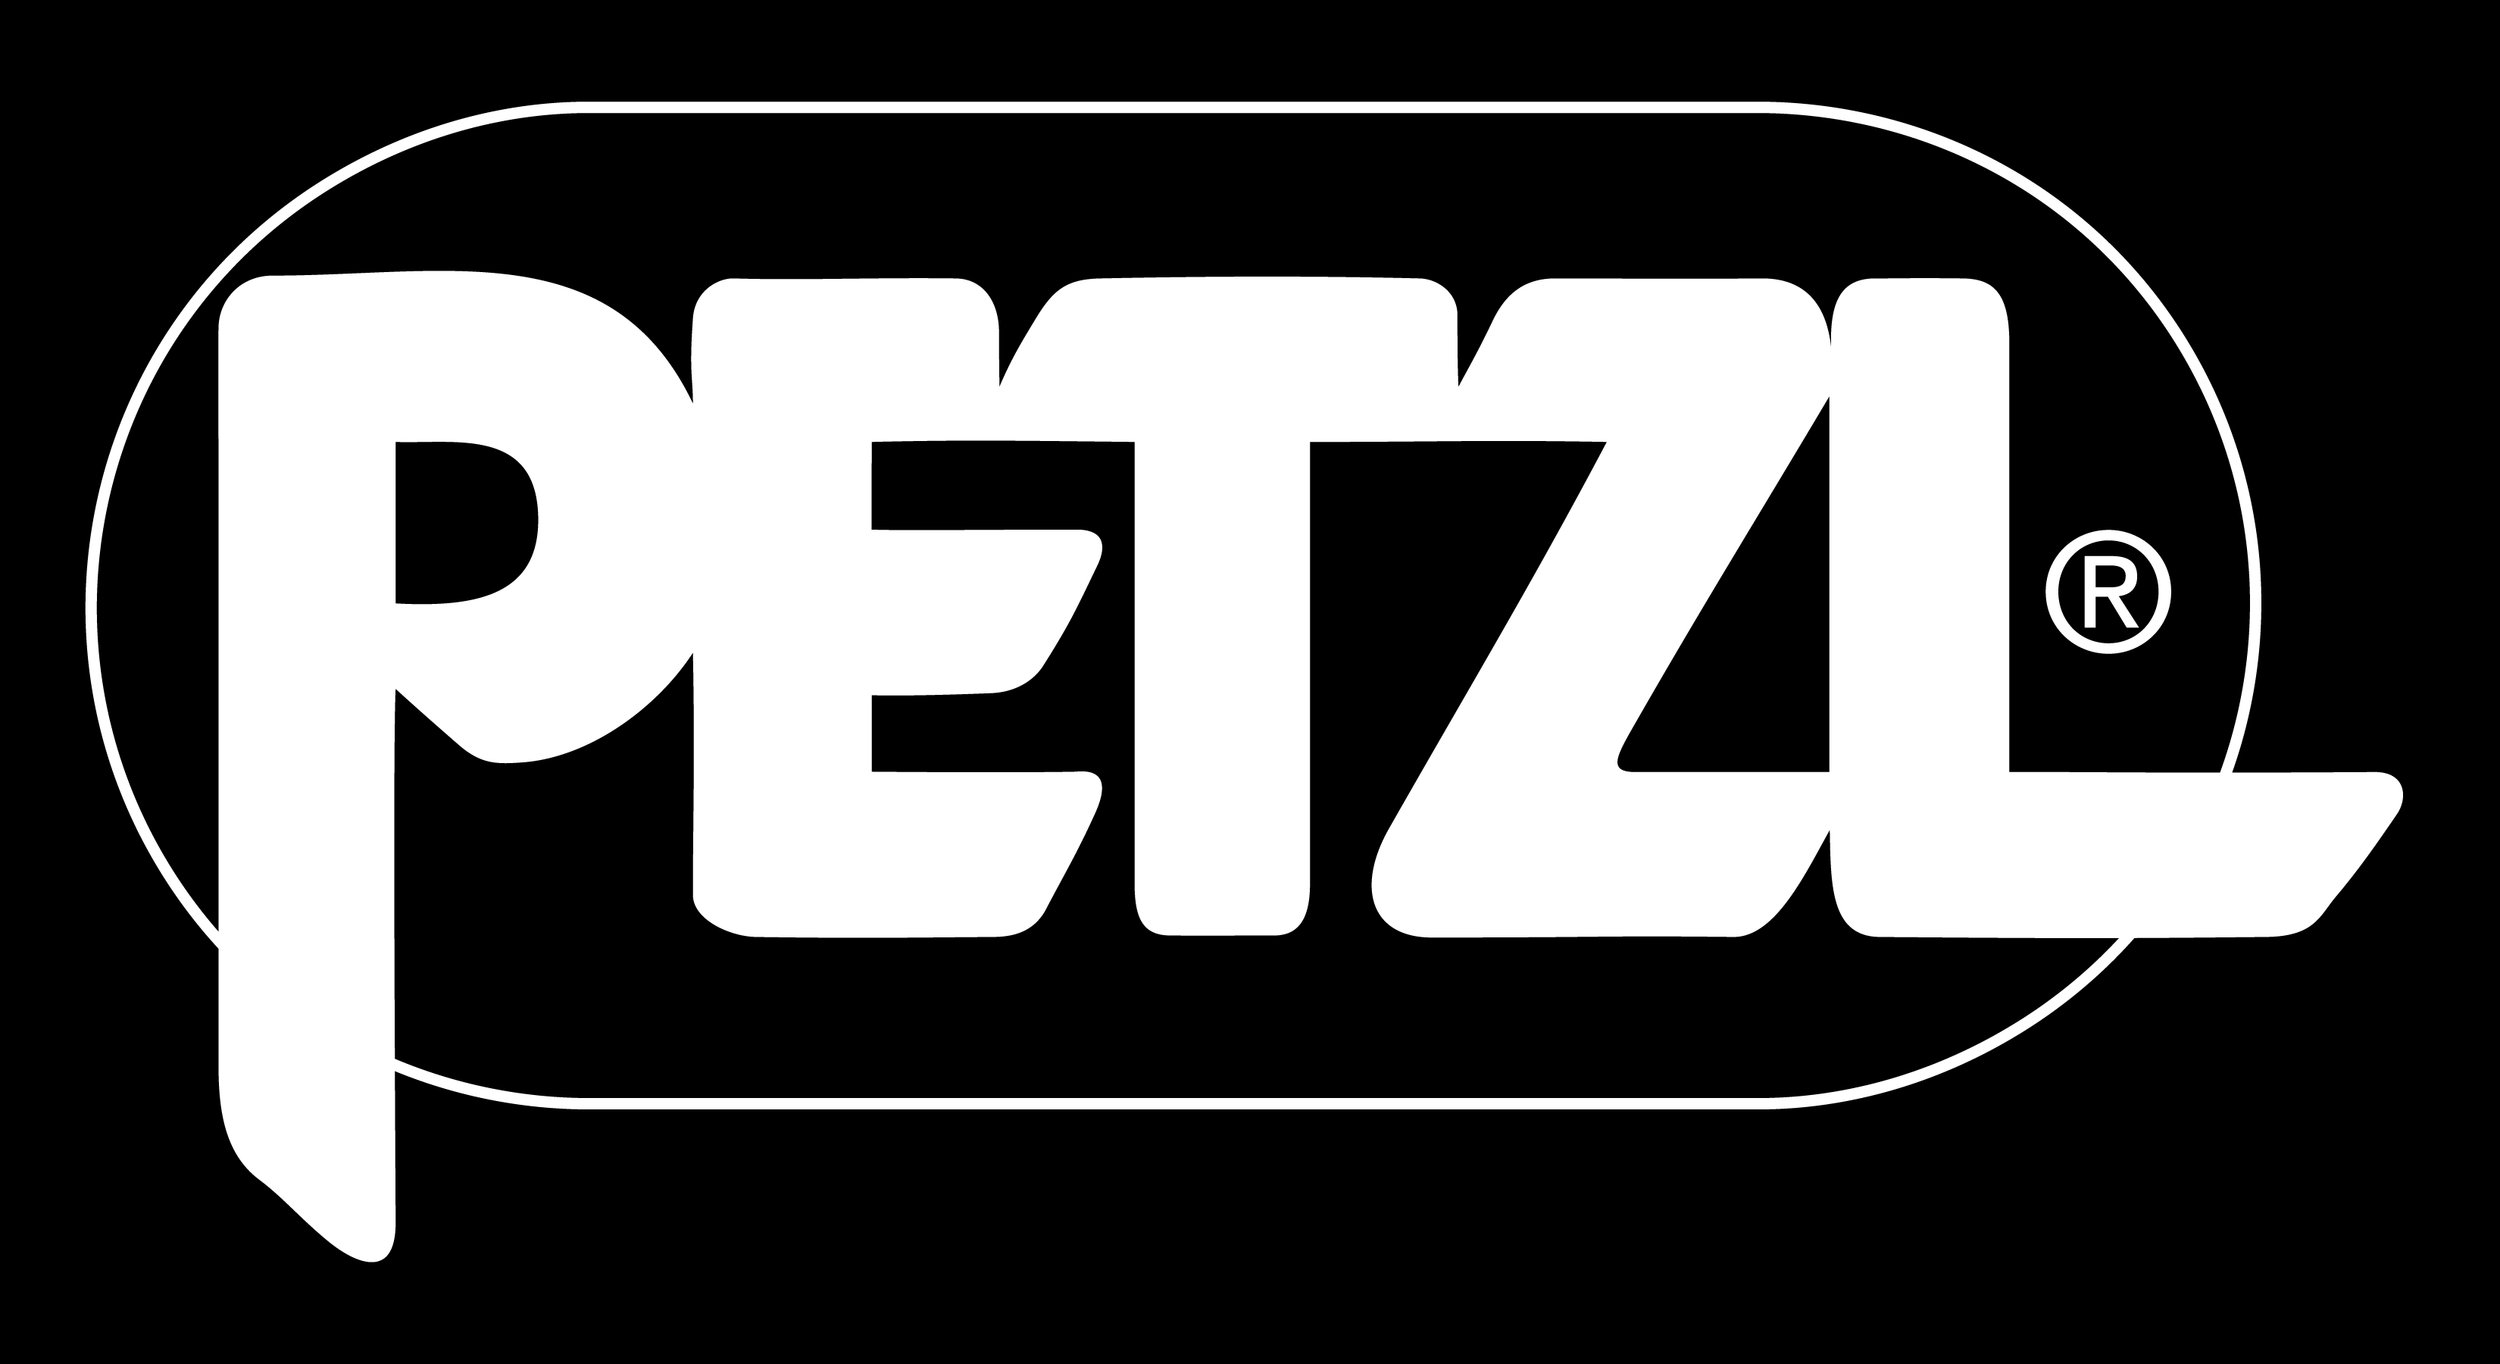 Petzl logo_white on black.jpg